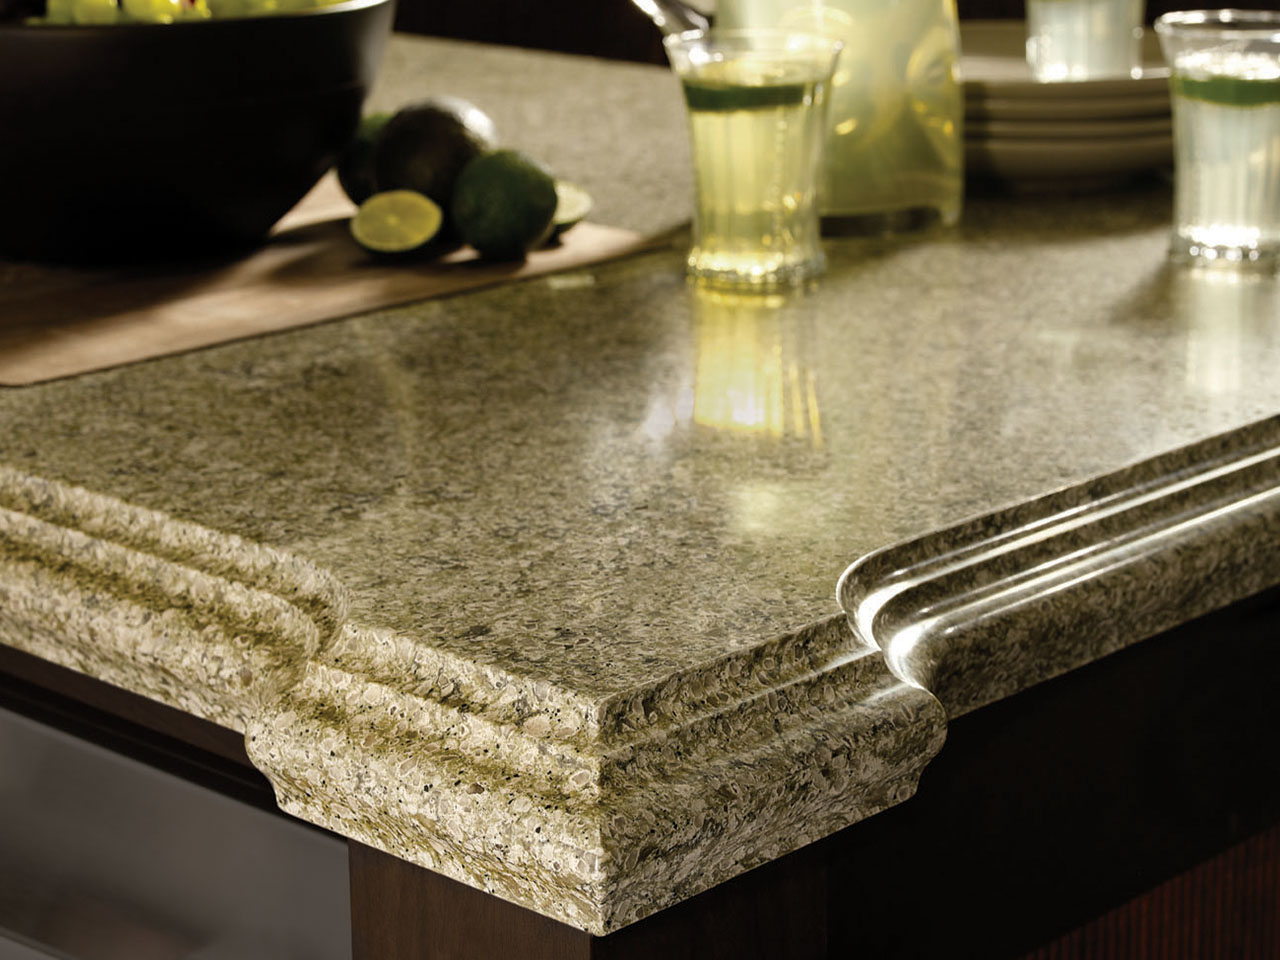 Natural Way To Clean Granite Countertops Keeping It Clean Quartz And Natural Stone Cleaning Tips